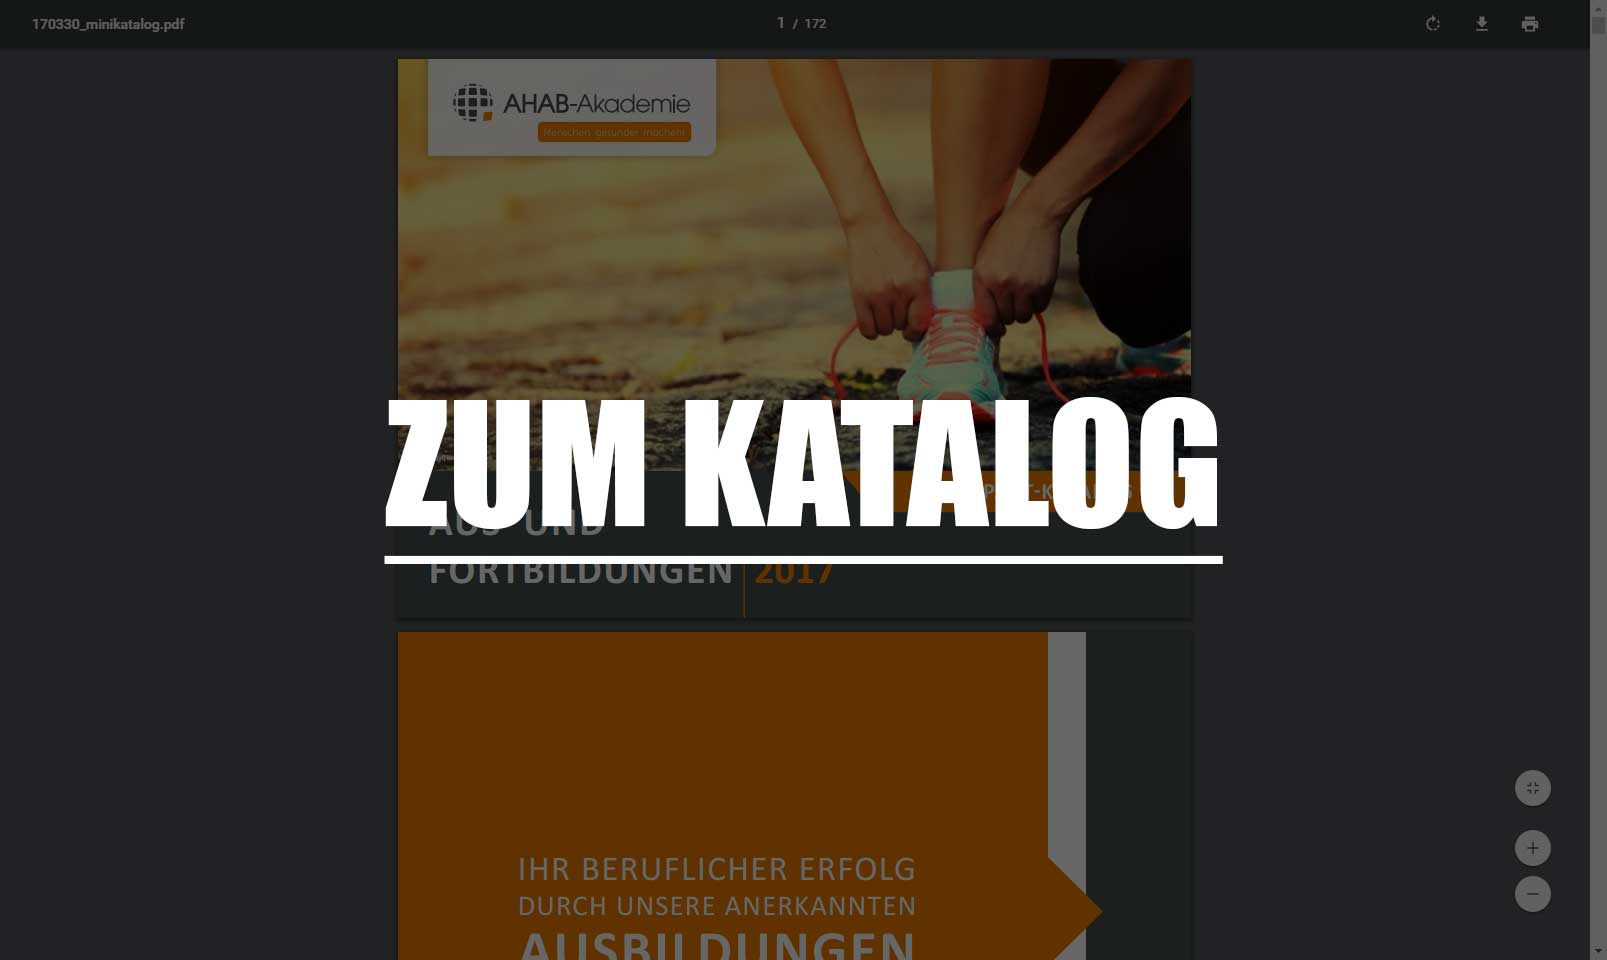 Screenshot vom Katalog